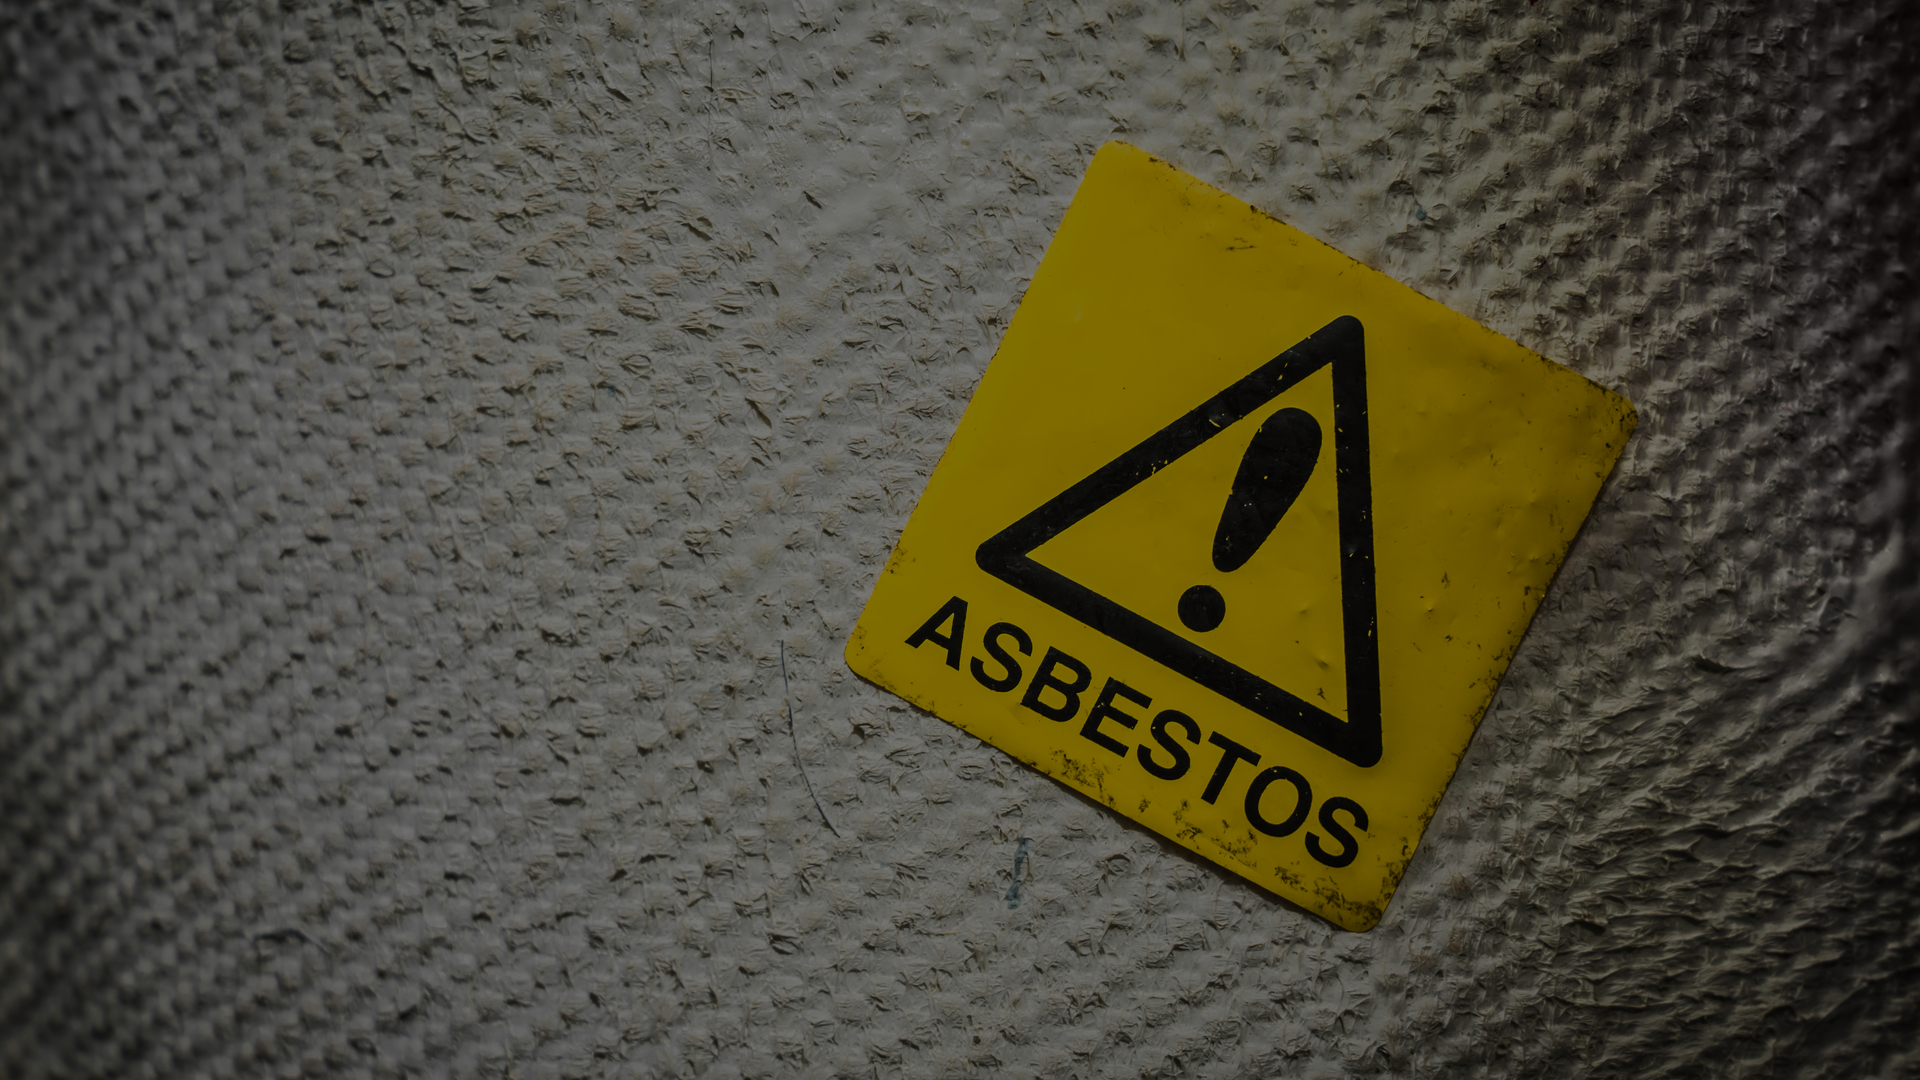 ASBESTOS: The Latest Health and Safety Prosecutions